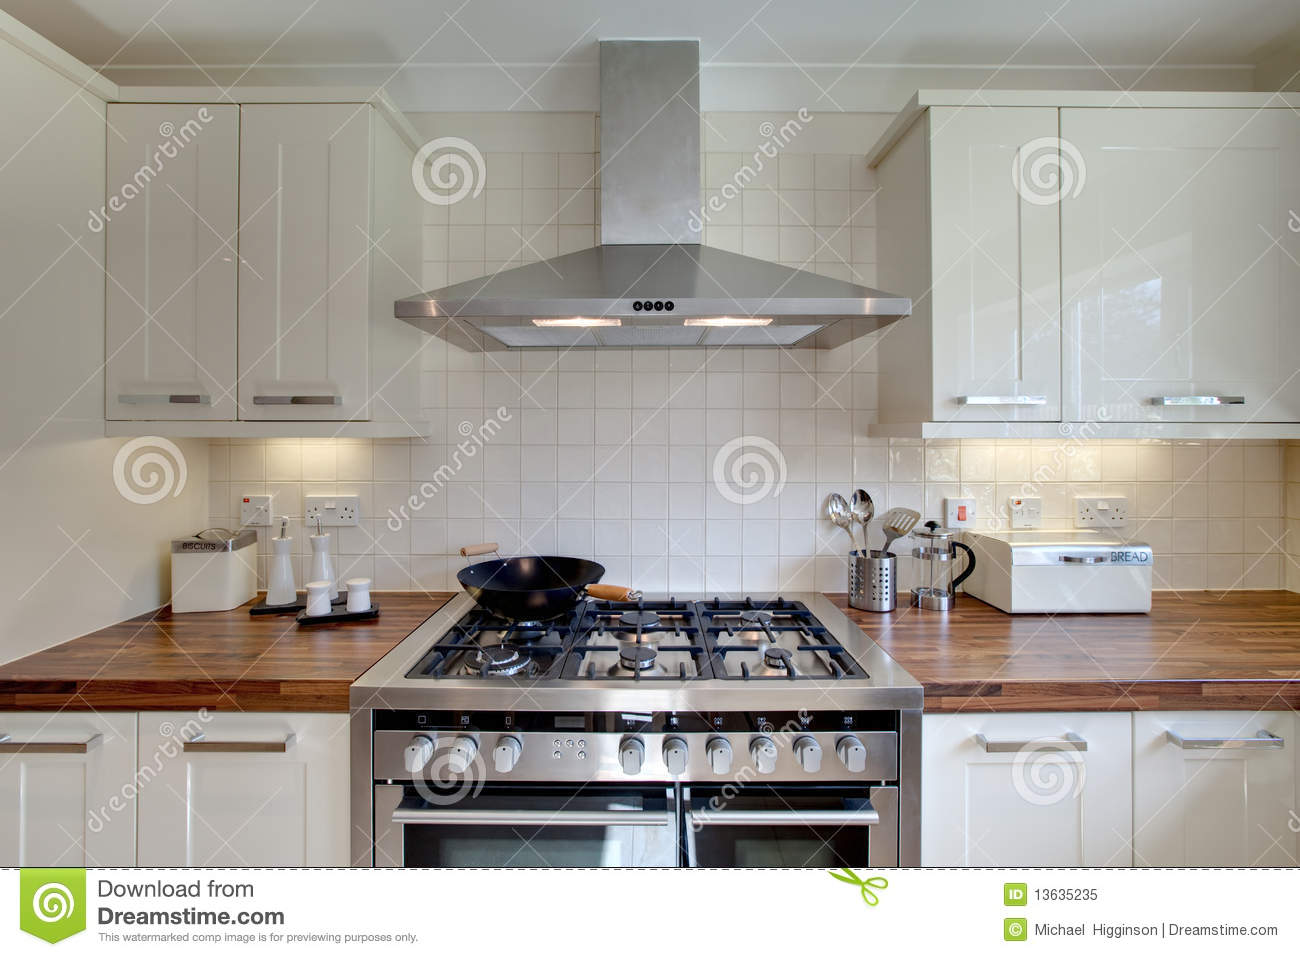 Modern Cooker Royalty Free Stock Photo - Image: 13635235